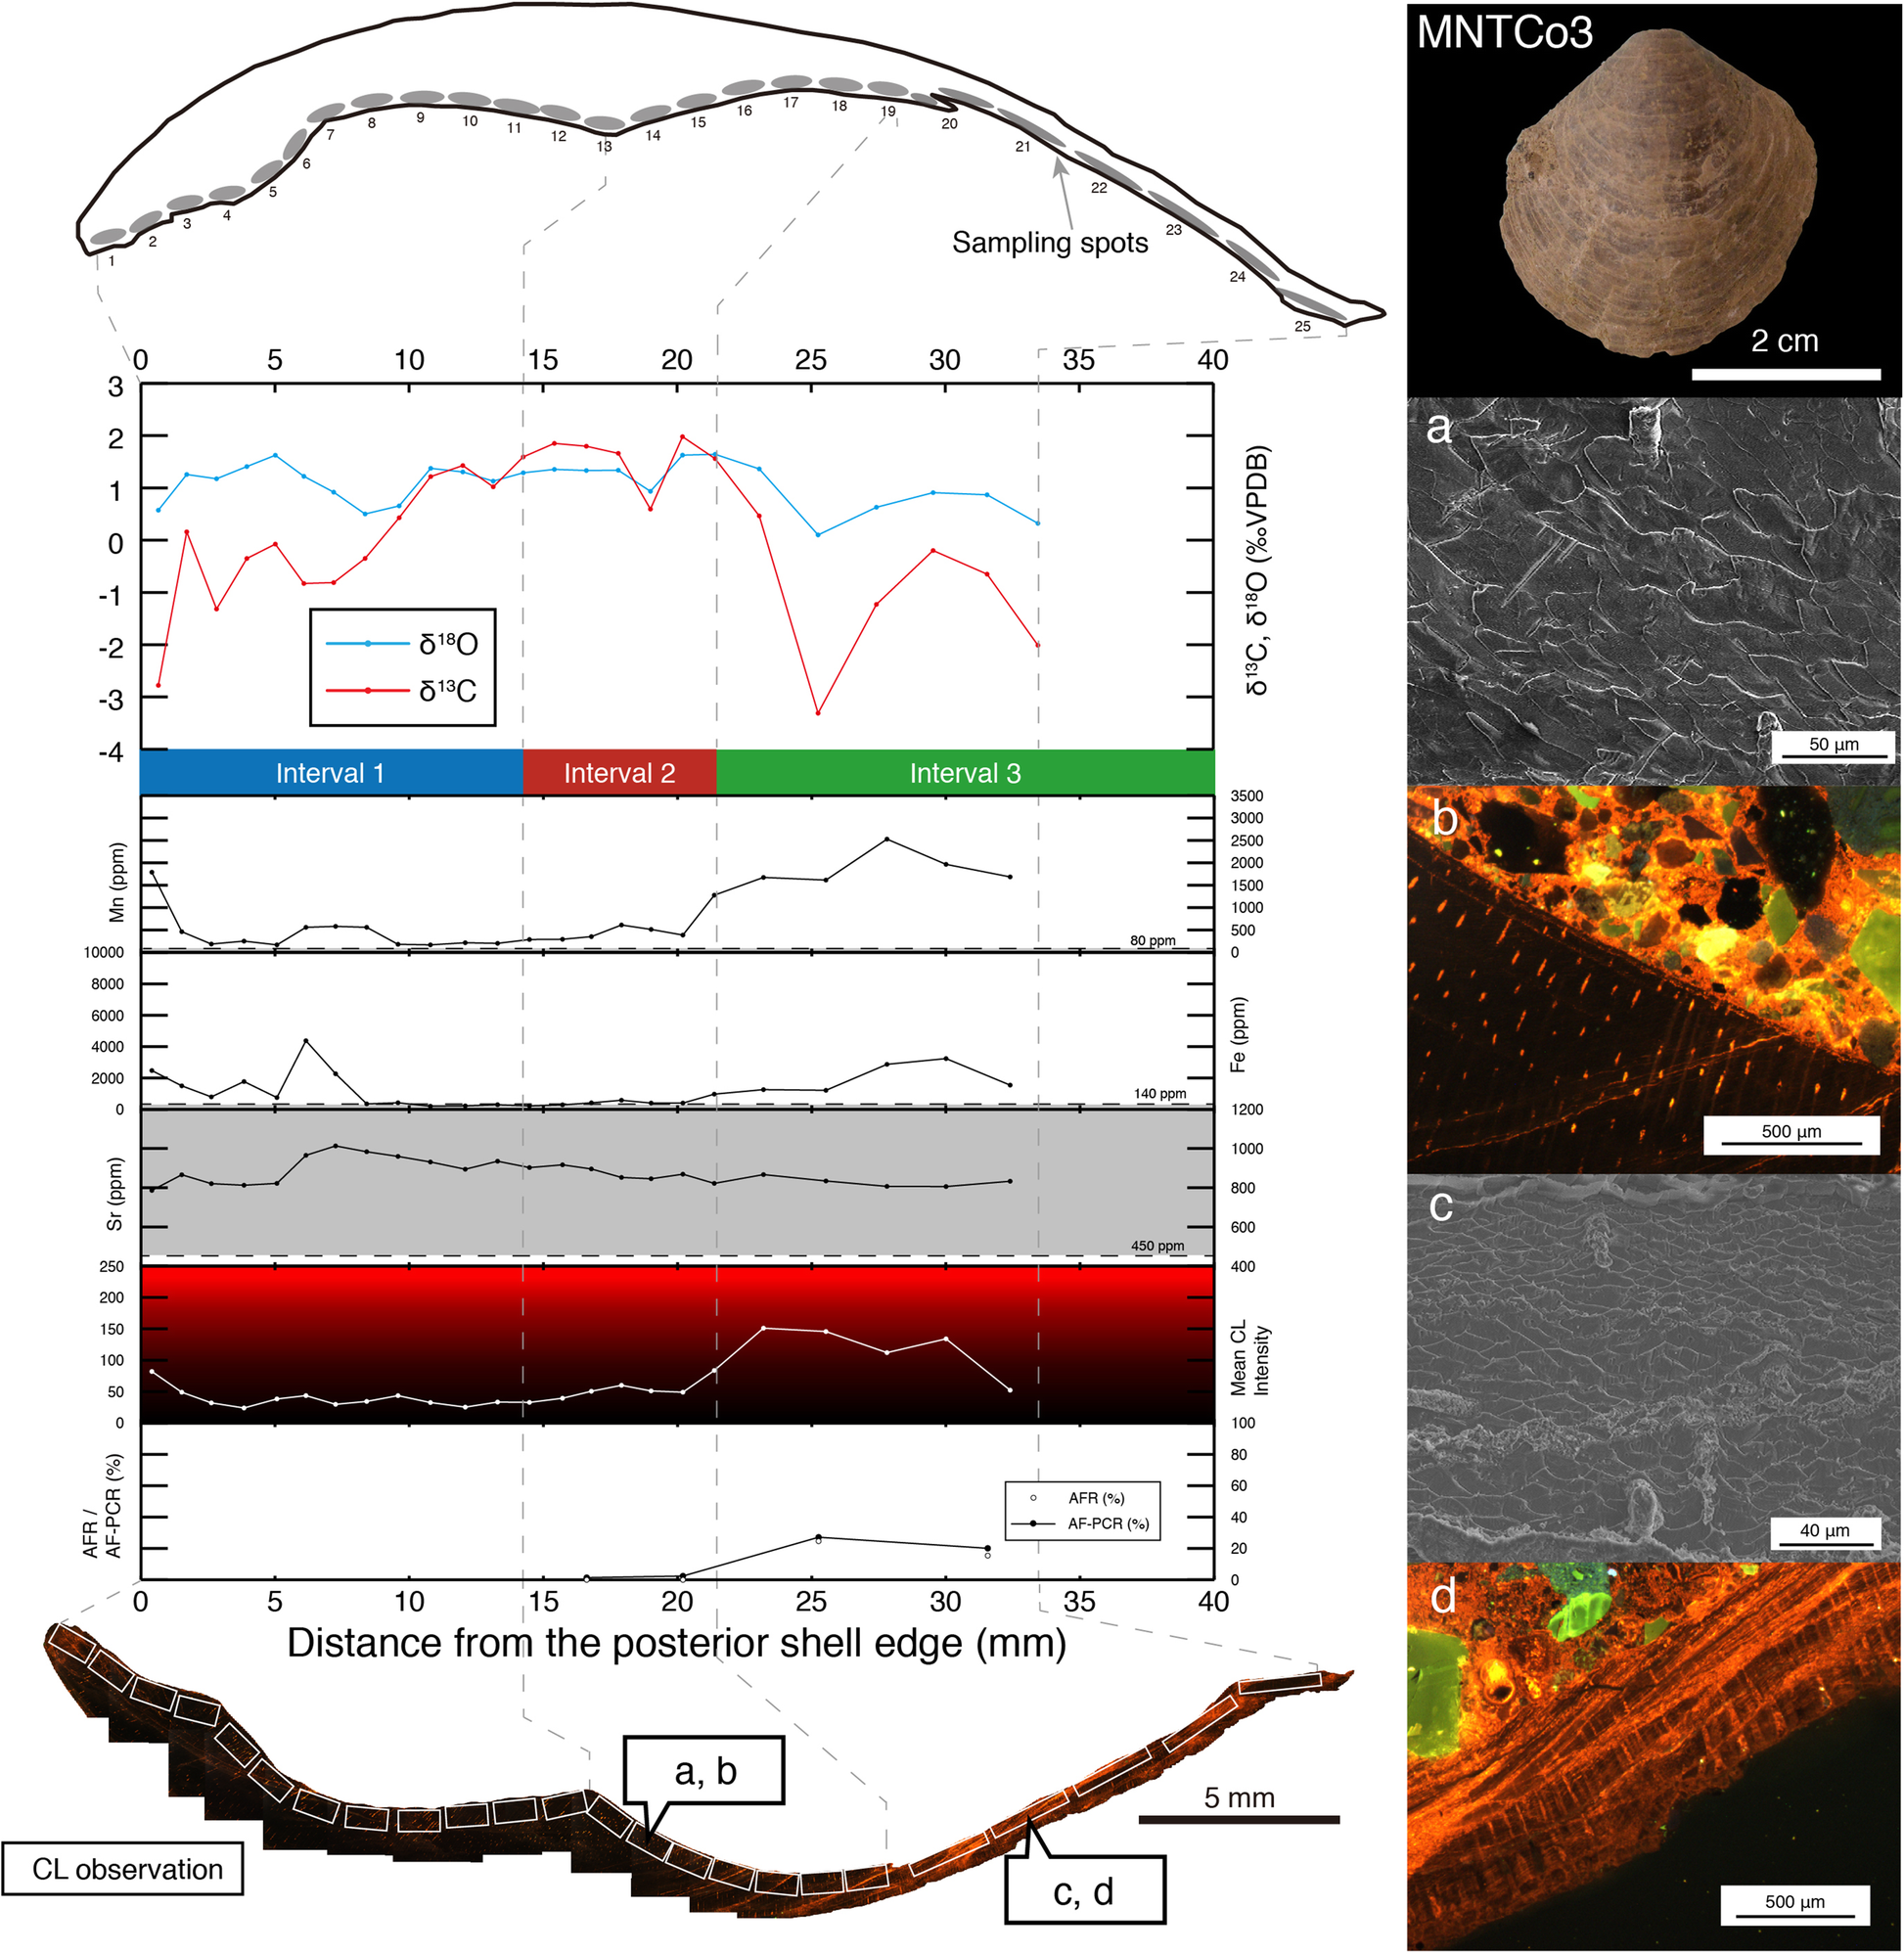 The effects of meteoric diagenesis on the geochemical composition